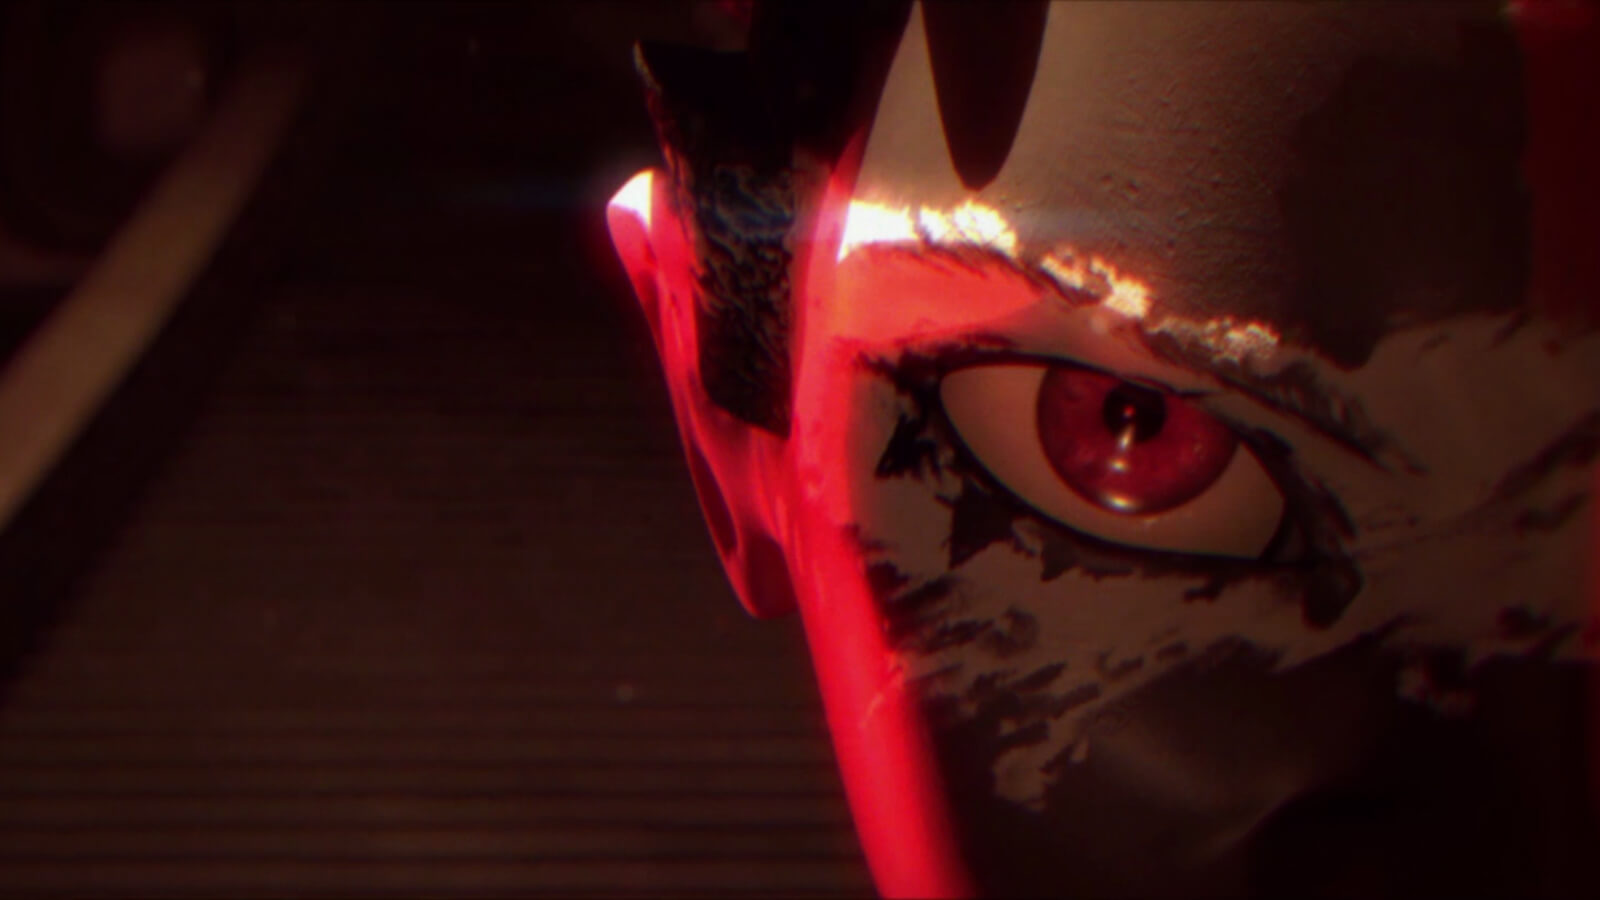 Extreme close up of a face on the right half of the image, including an eye and ear lit by red light